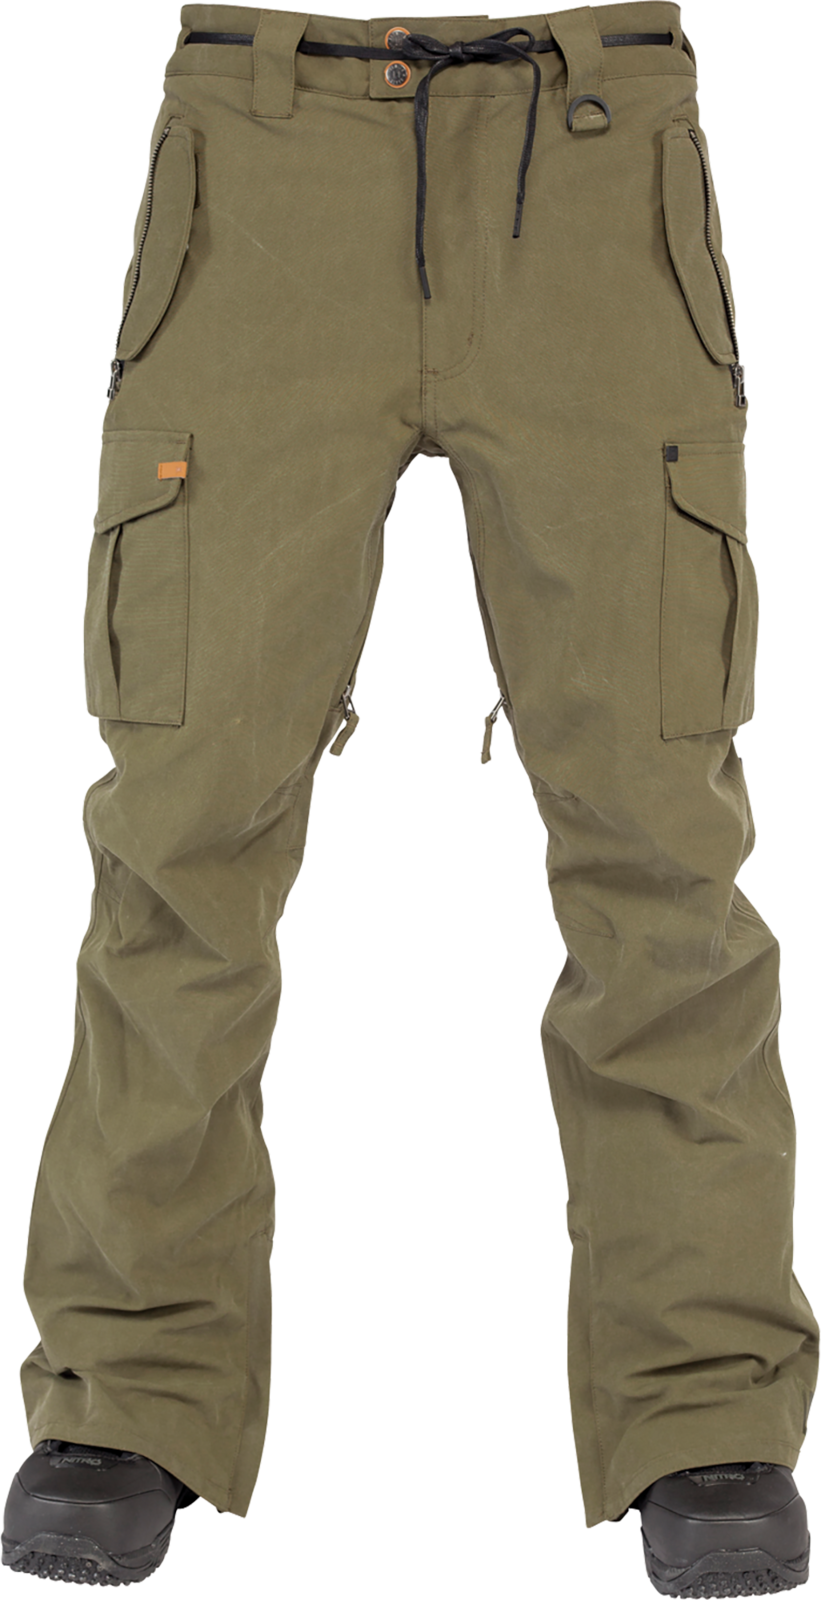 Cargo Pant Png File PNG Image